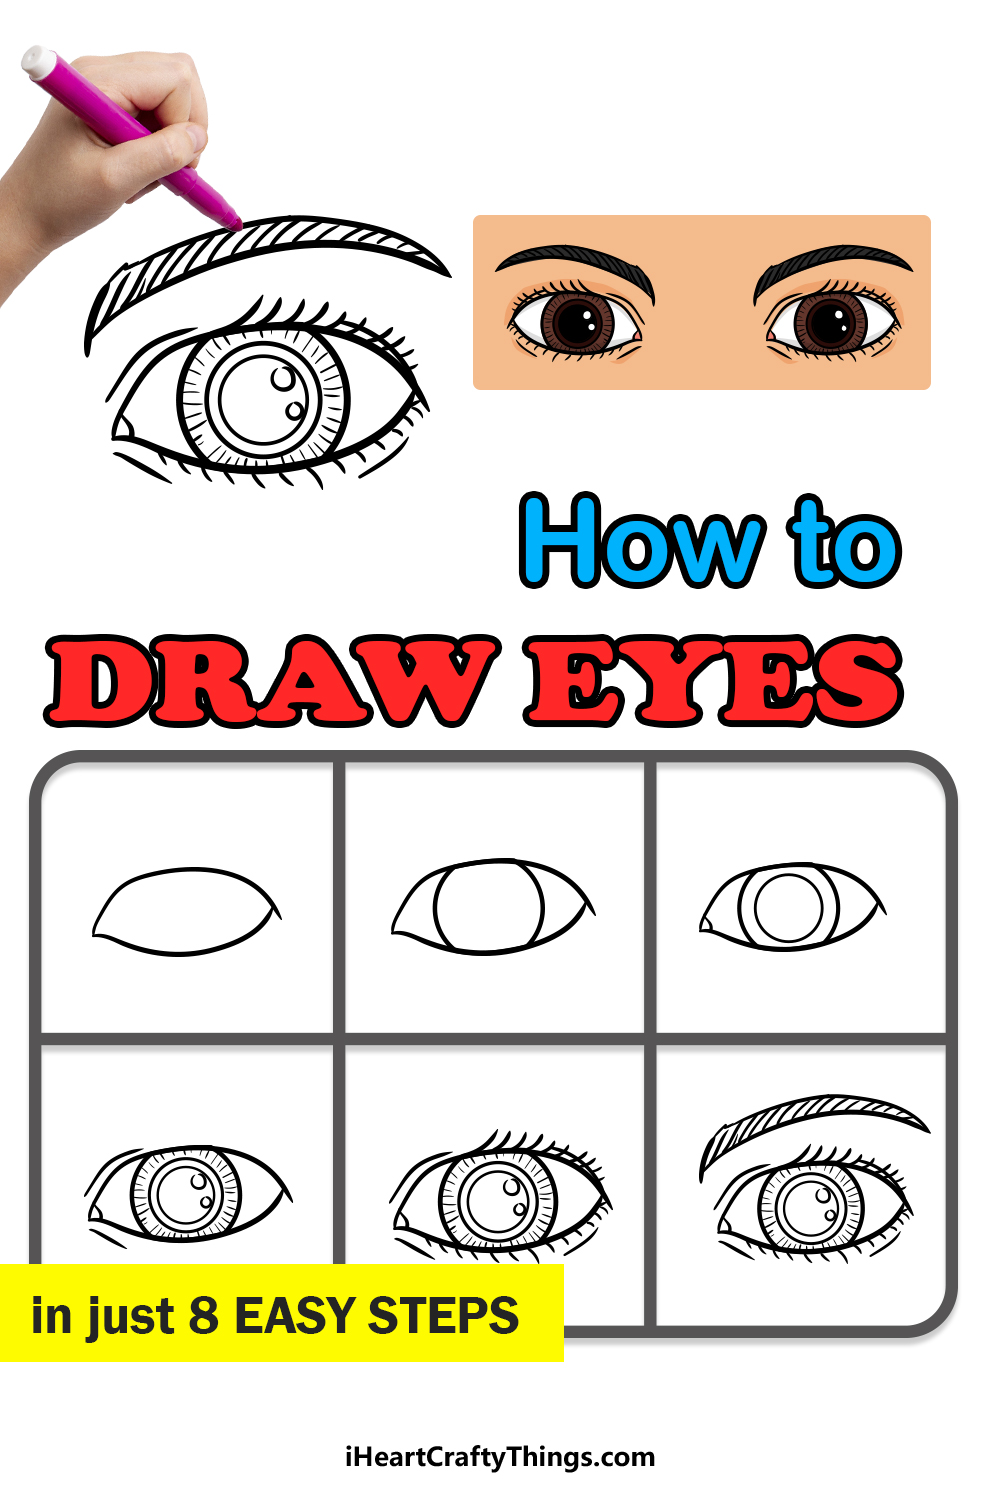 how to draw eyes in 8 easy steps